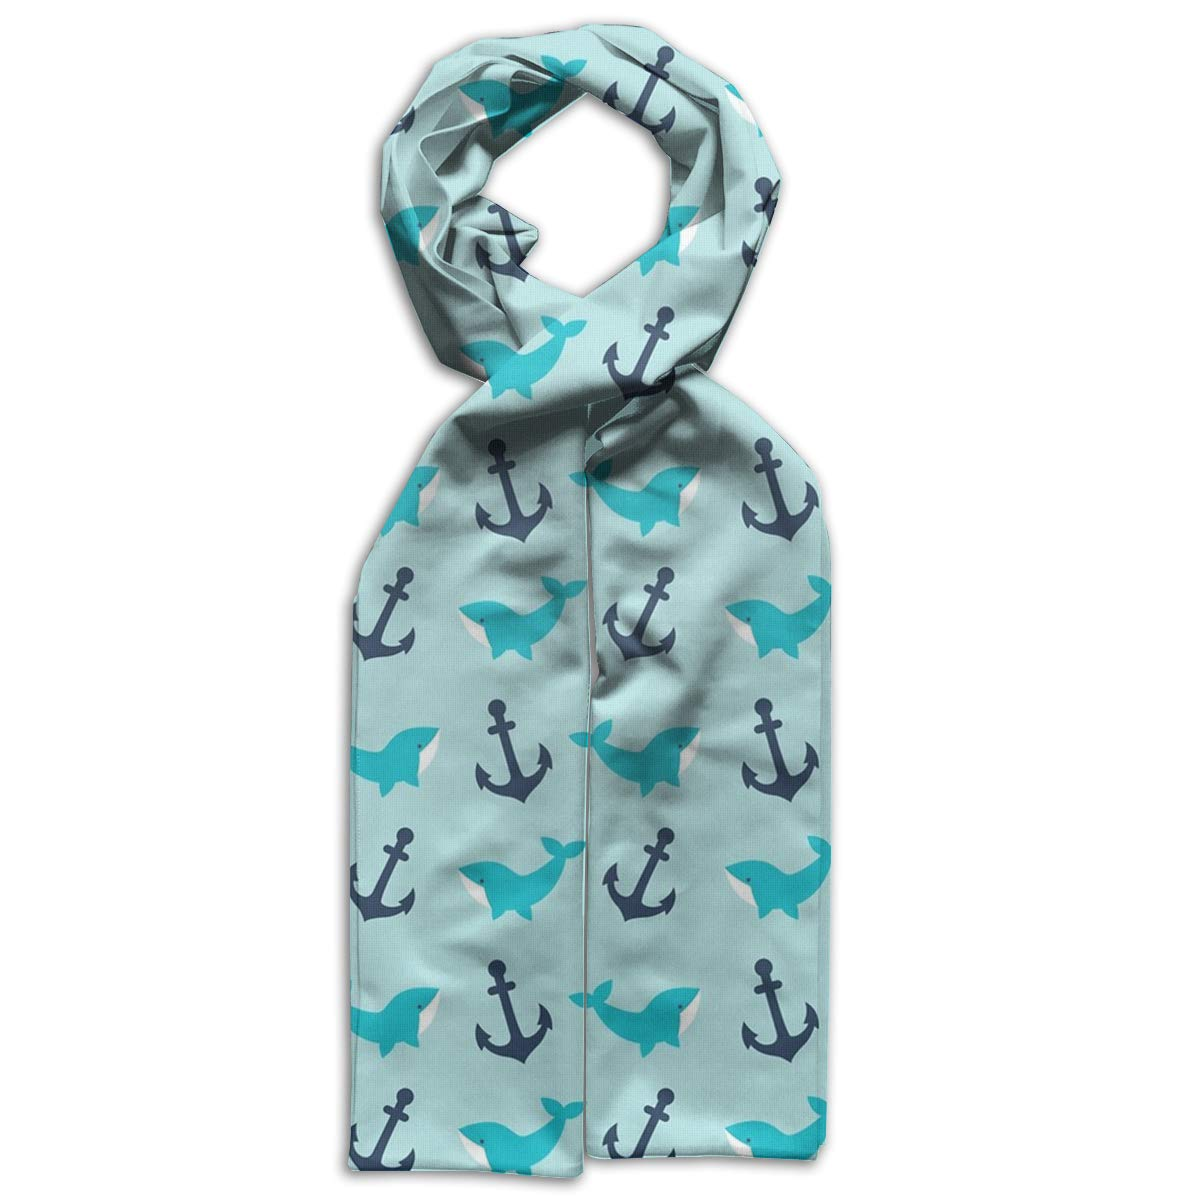 Kids Printed Scarf Fashion Winter Infinity Scarf Warmer Travel Scarf For Kids Perfect Birthday Gift Whale And Anchor